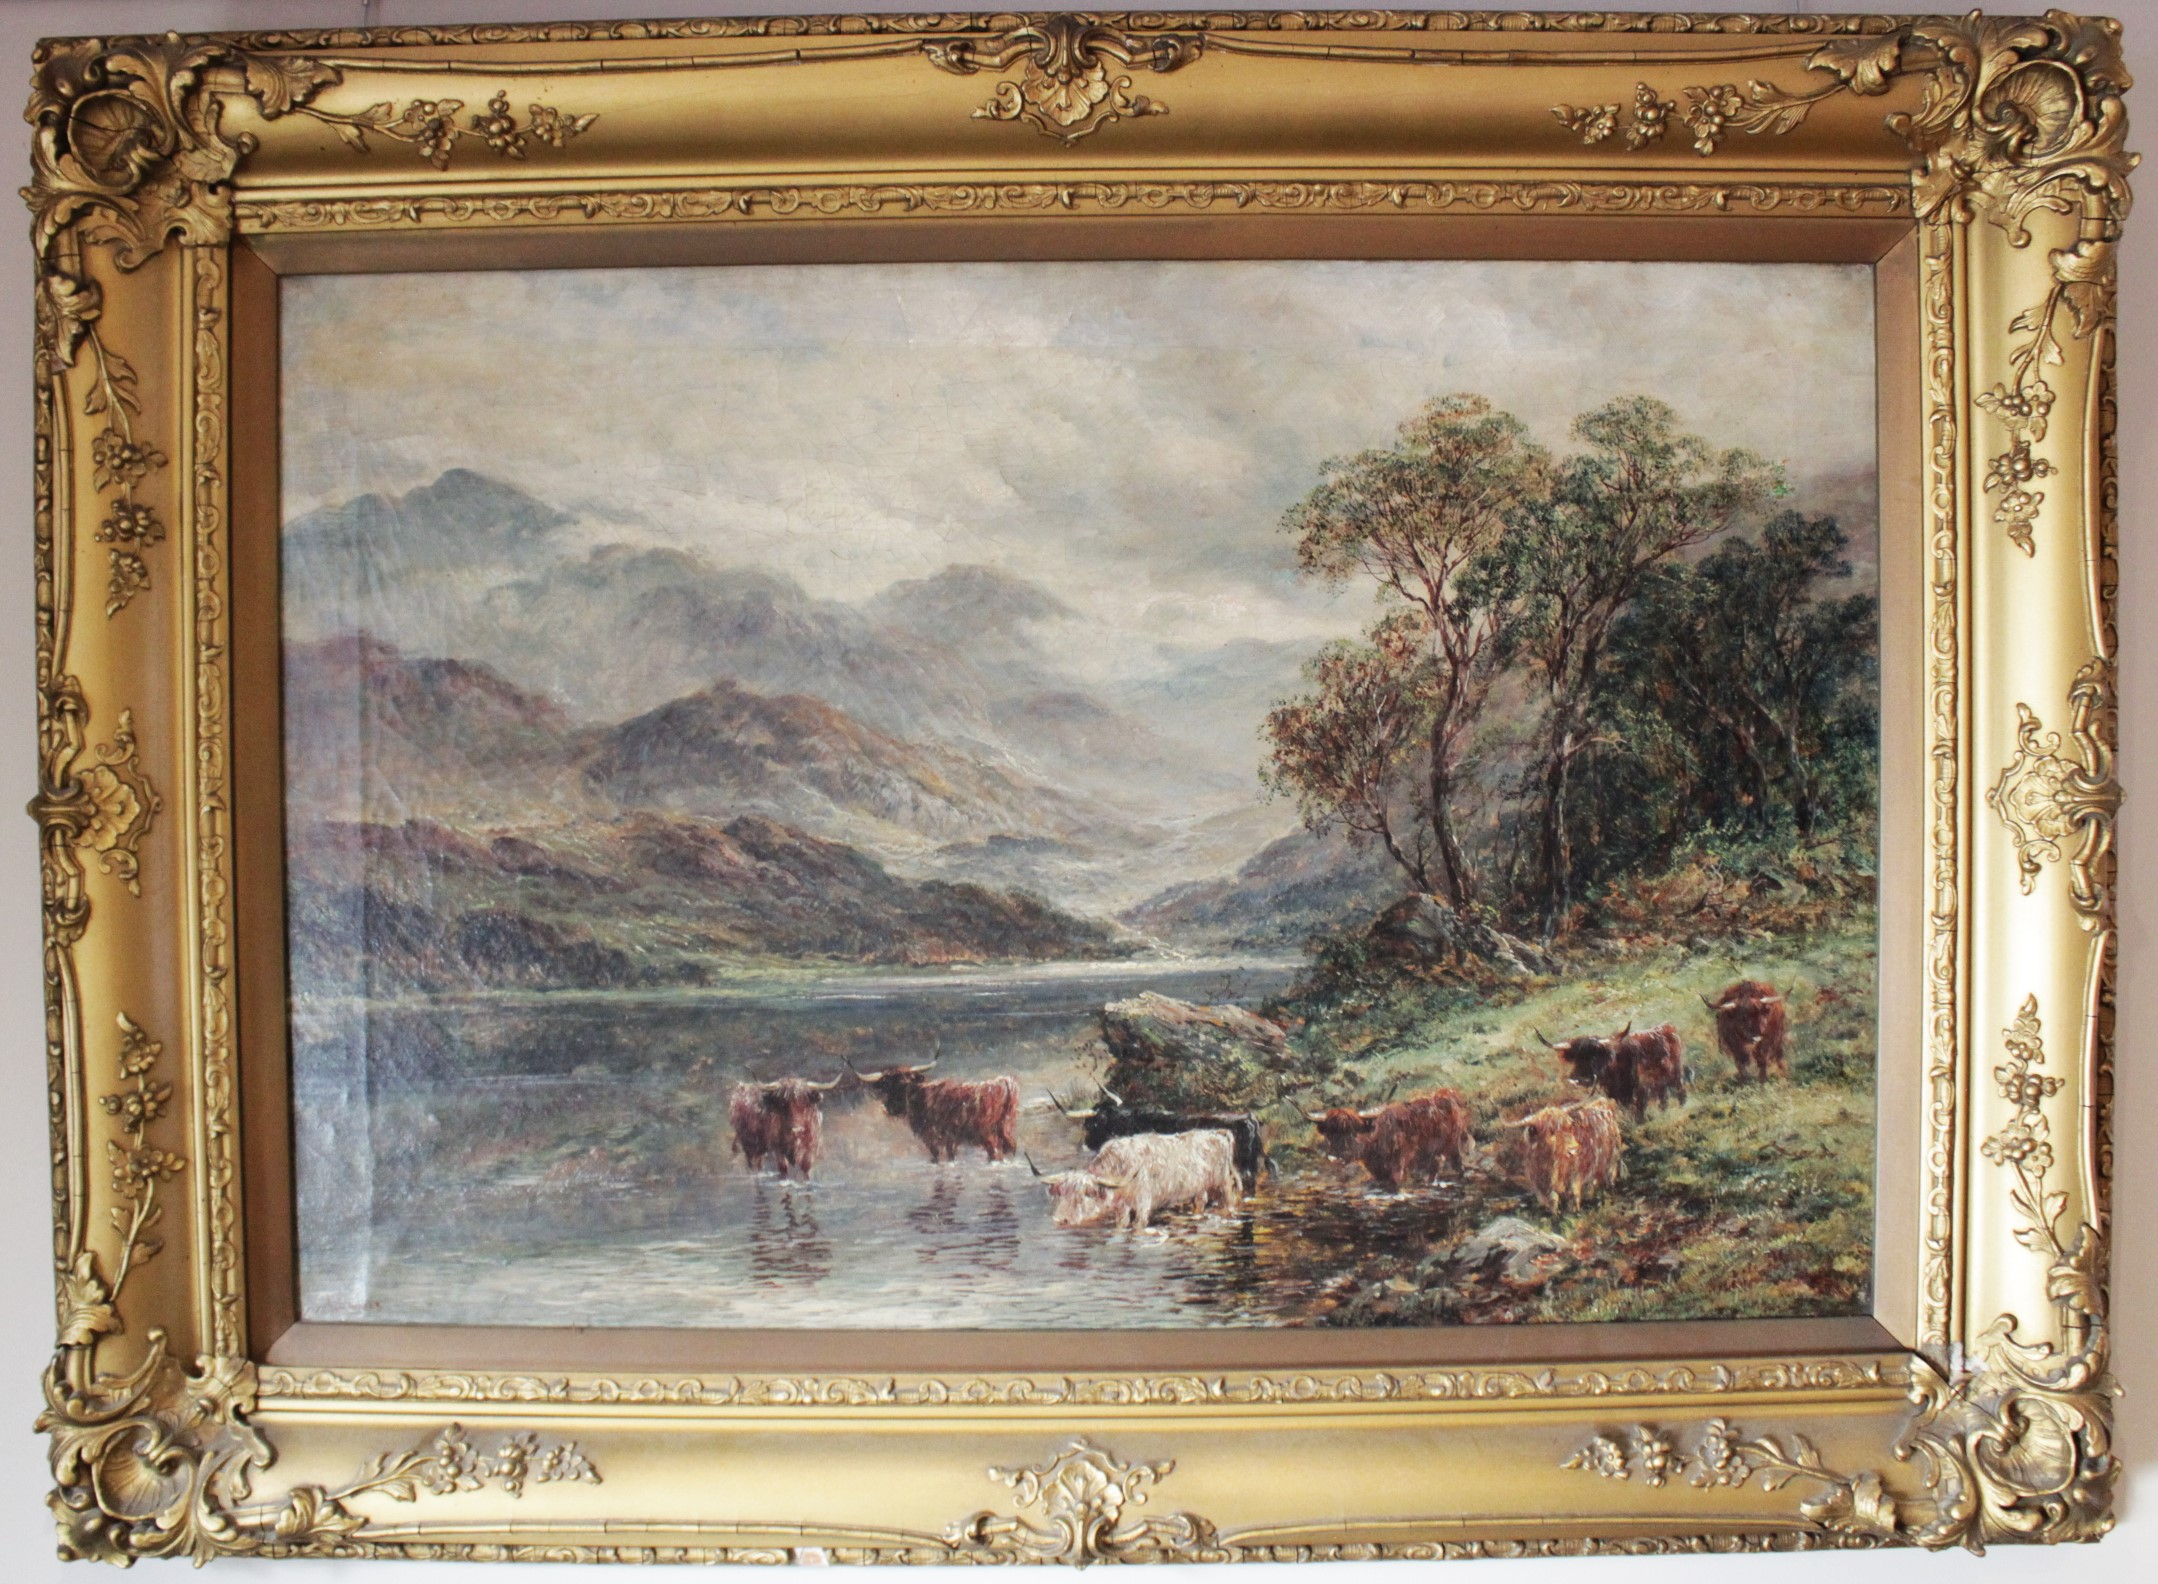 J. Lewis (English school, 19th century), Two mountainous landscapes with highland cattle, Oil on - Image 3 of 4